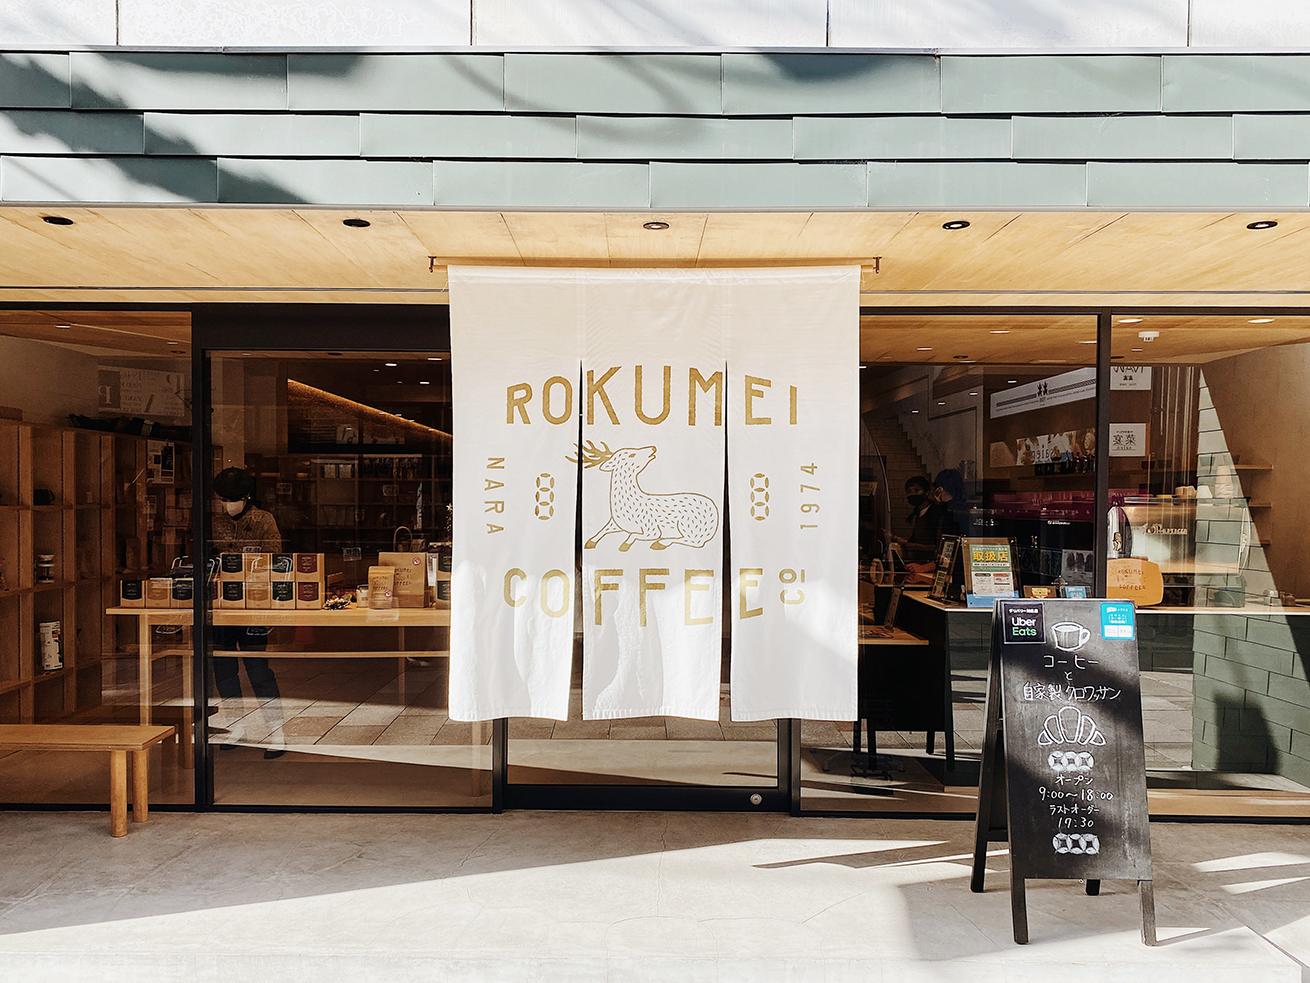 ROKUMEI COFFEE CO. NARA